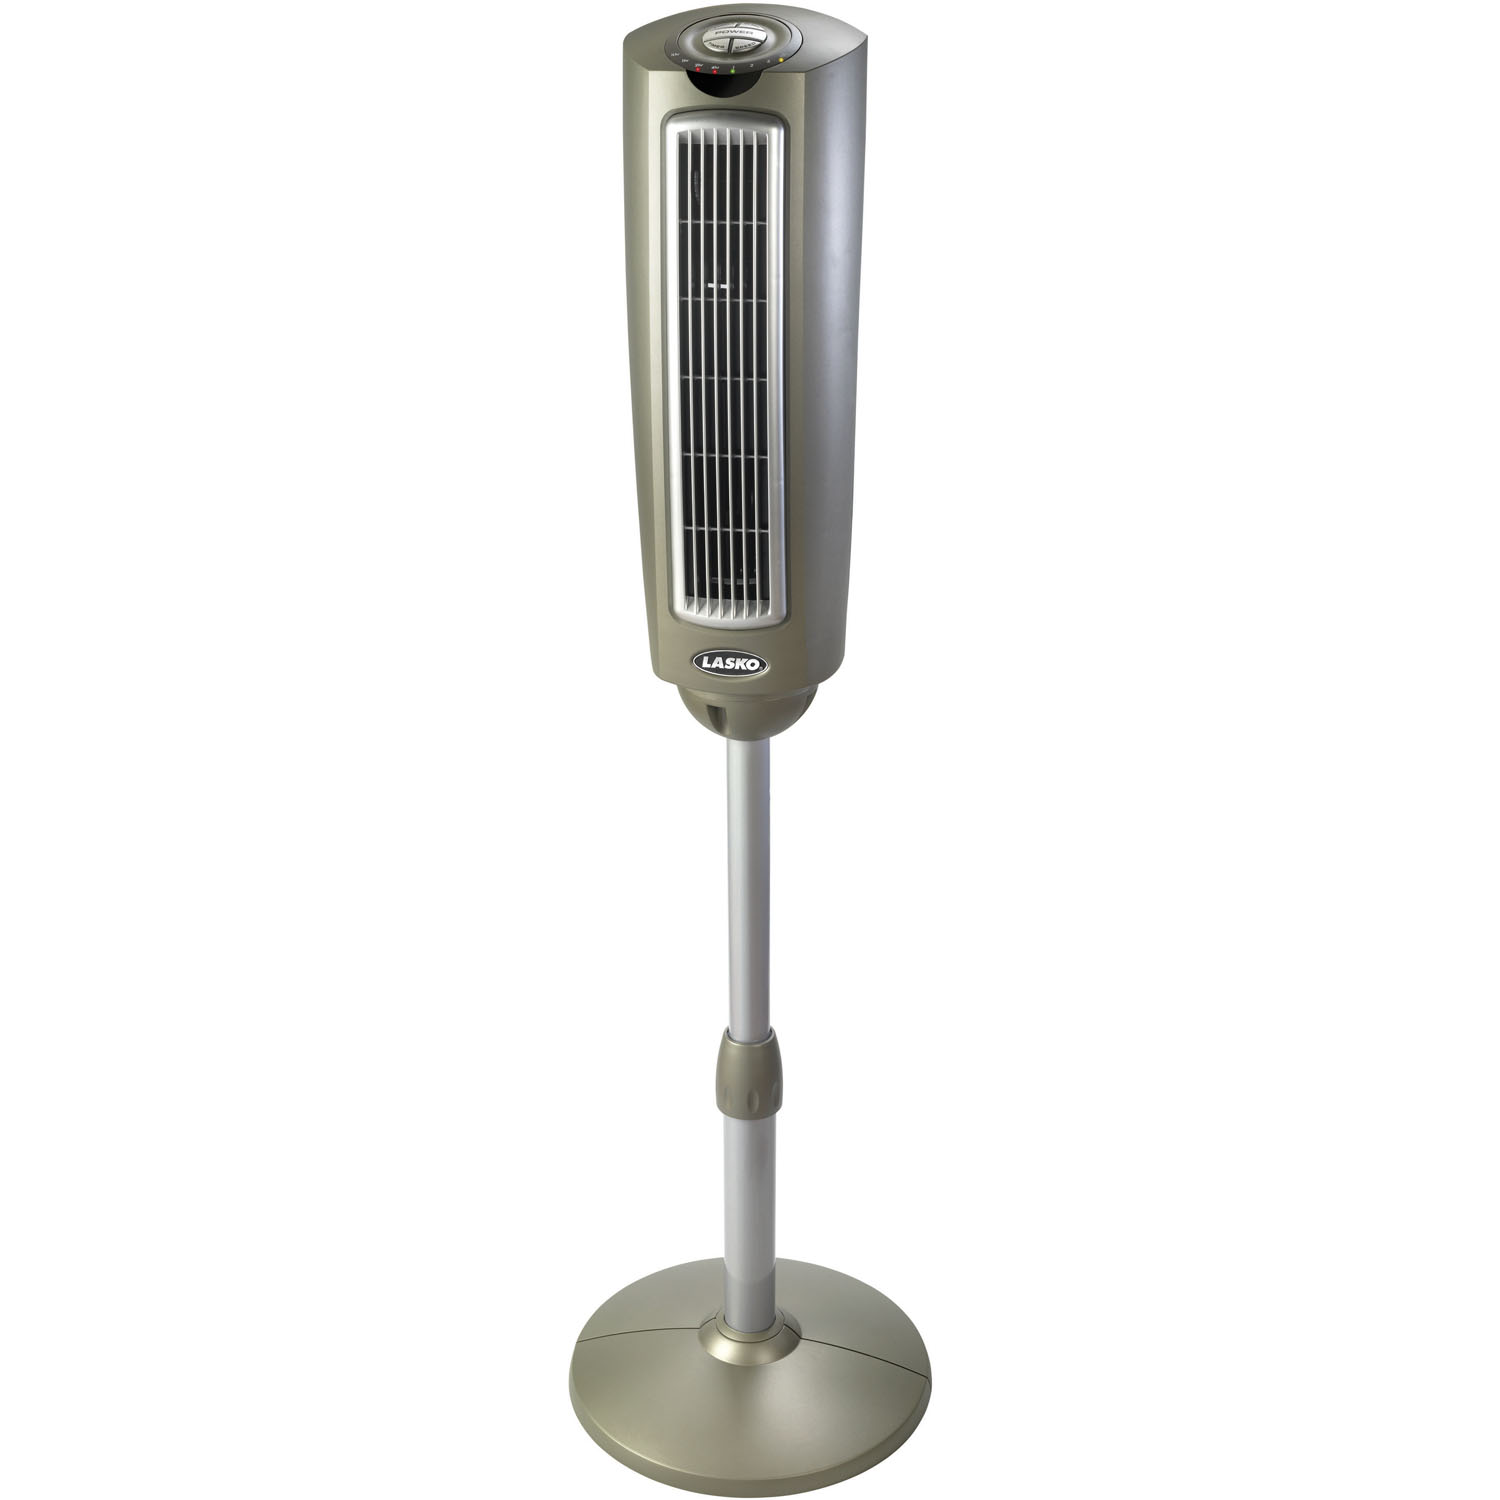 Remote Control Fans Table Top : Lasko in space saving oscillating tower fan with